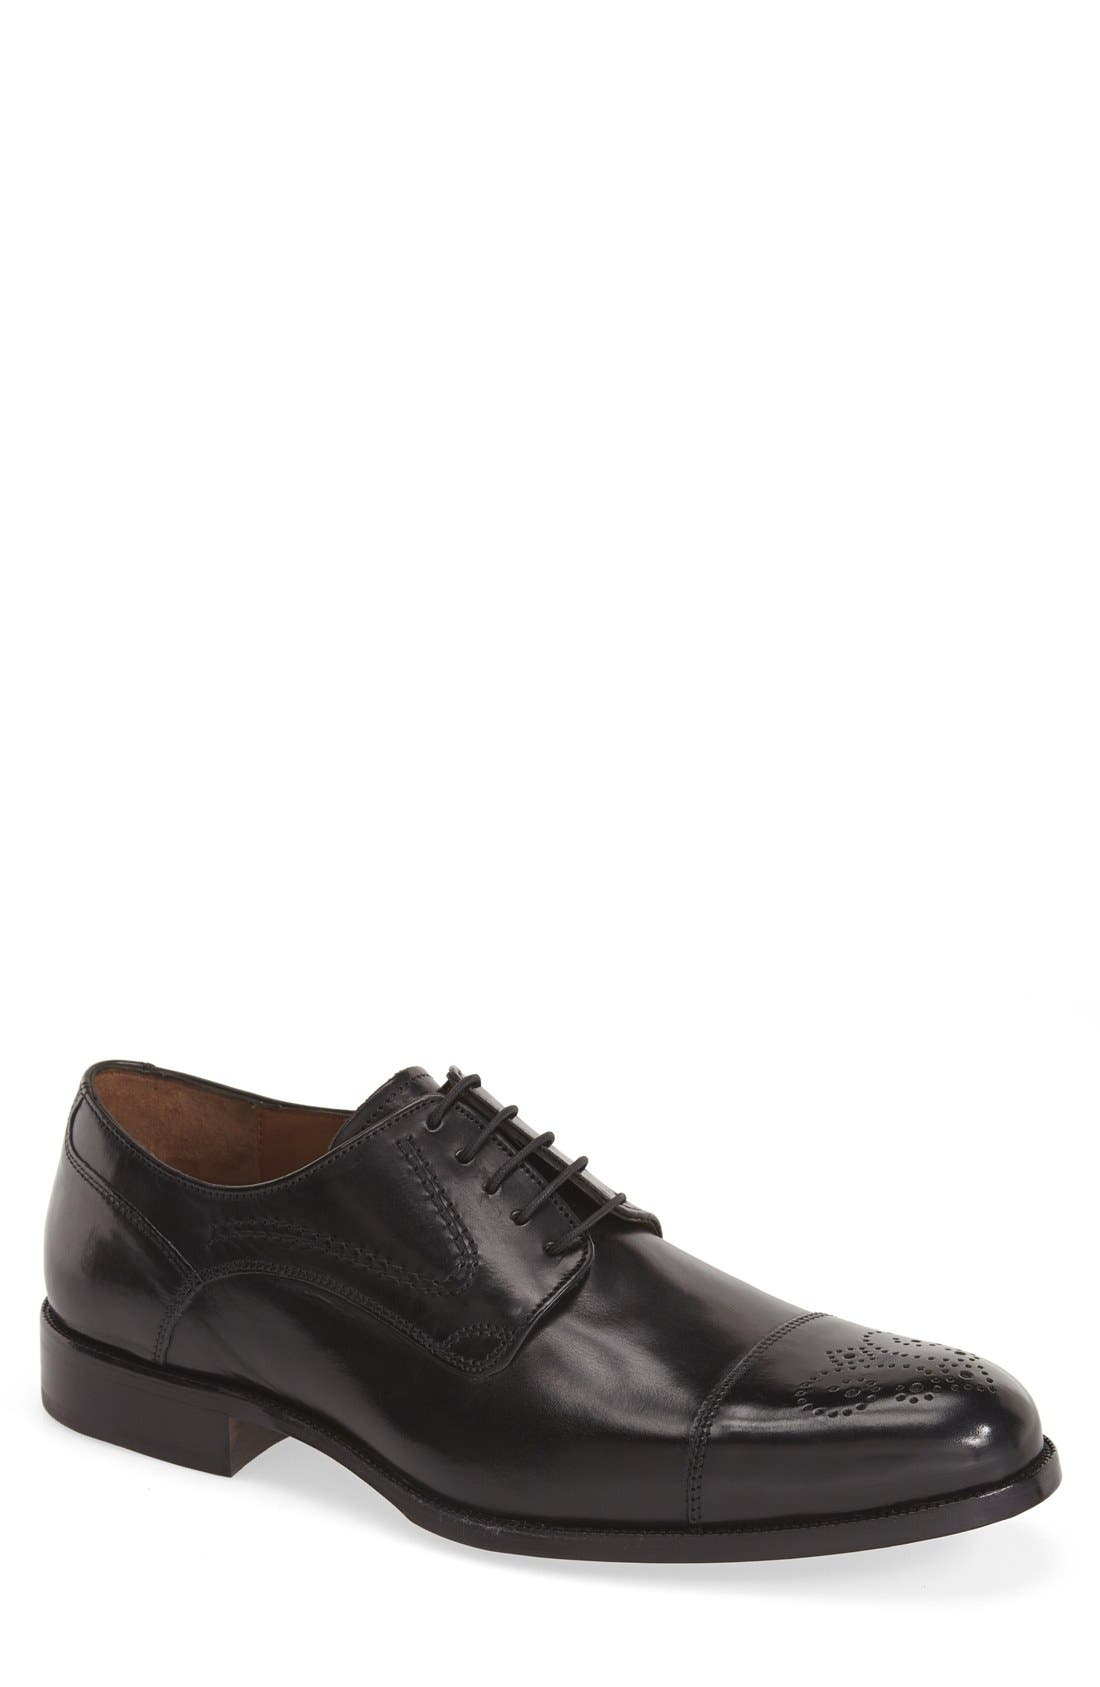 Johnston & Murphy 'Stratton' Cap Toe Derby (Men)